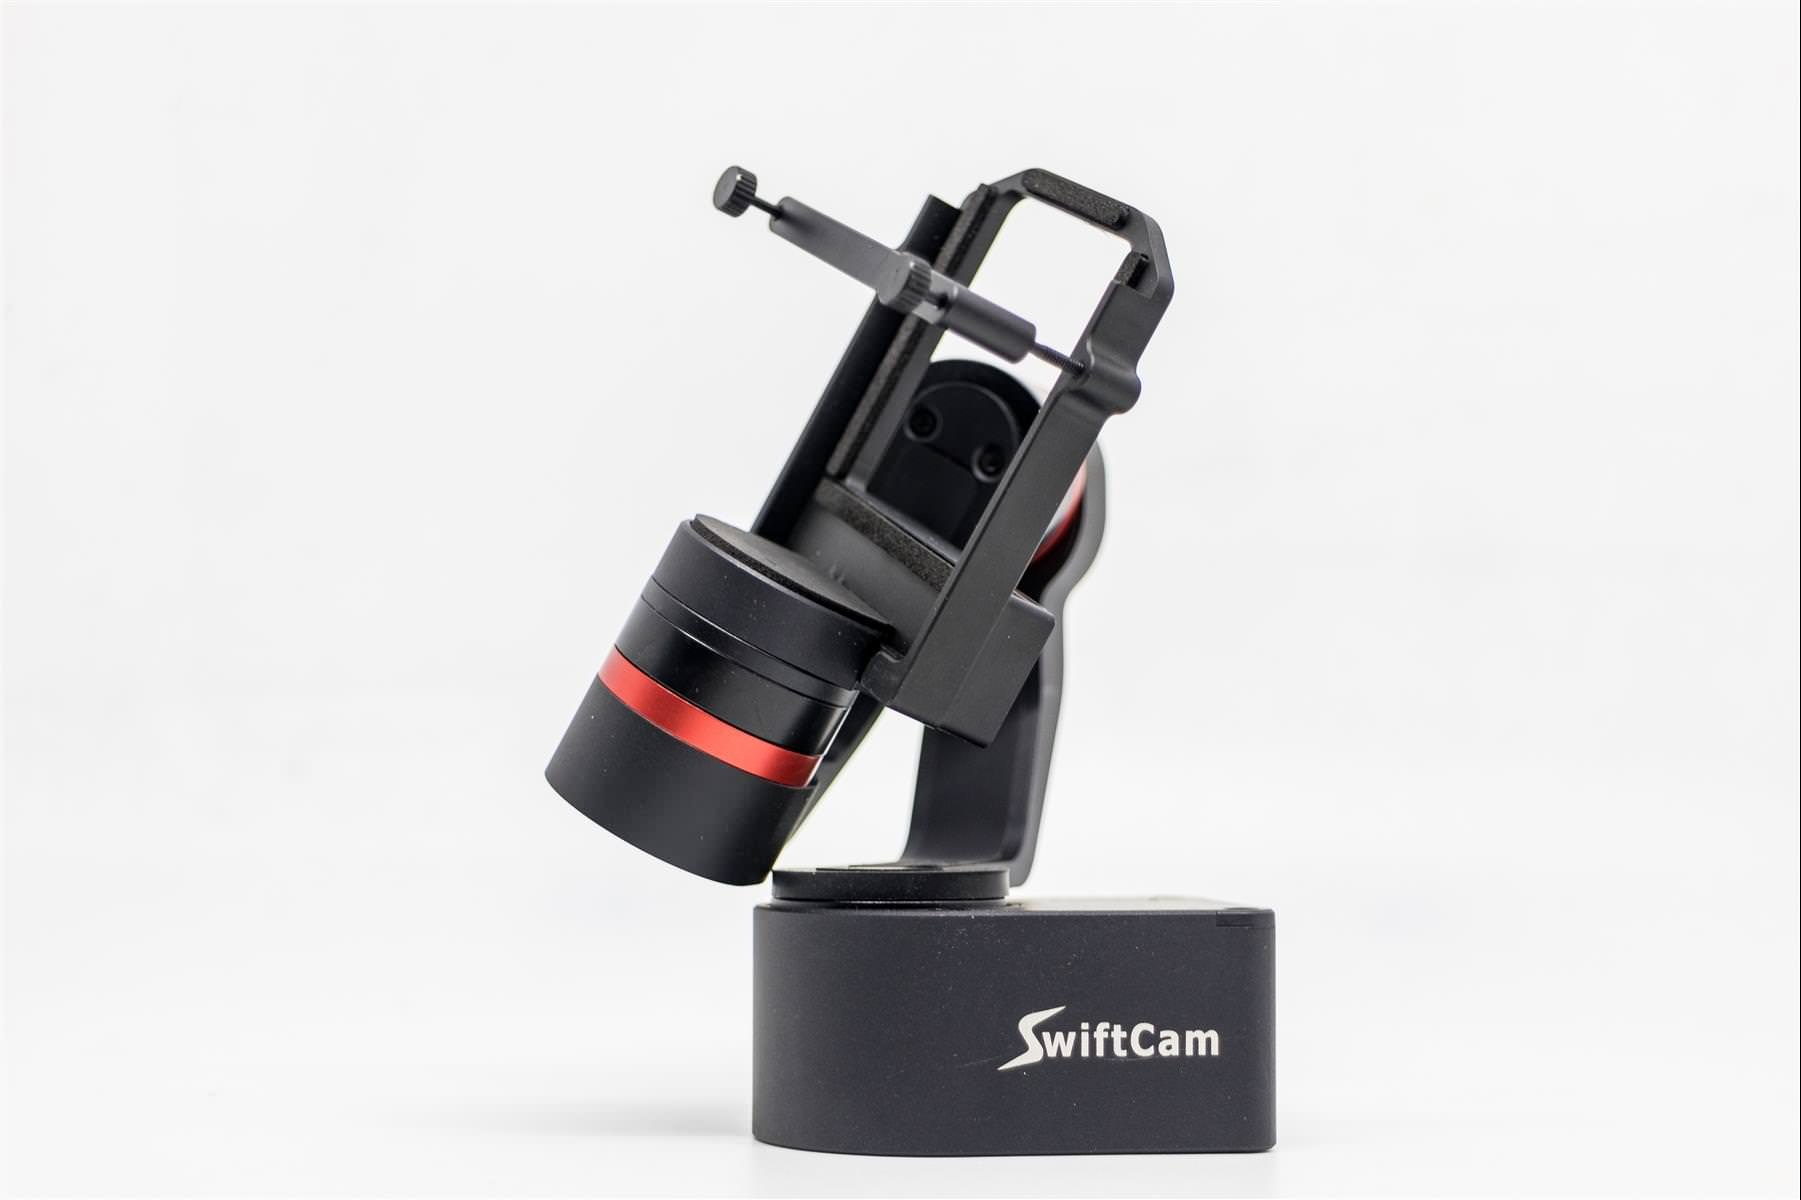 SwiftCam GV3